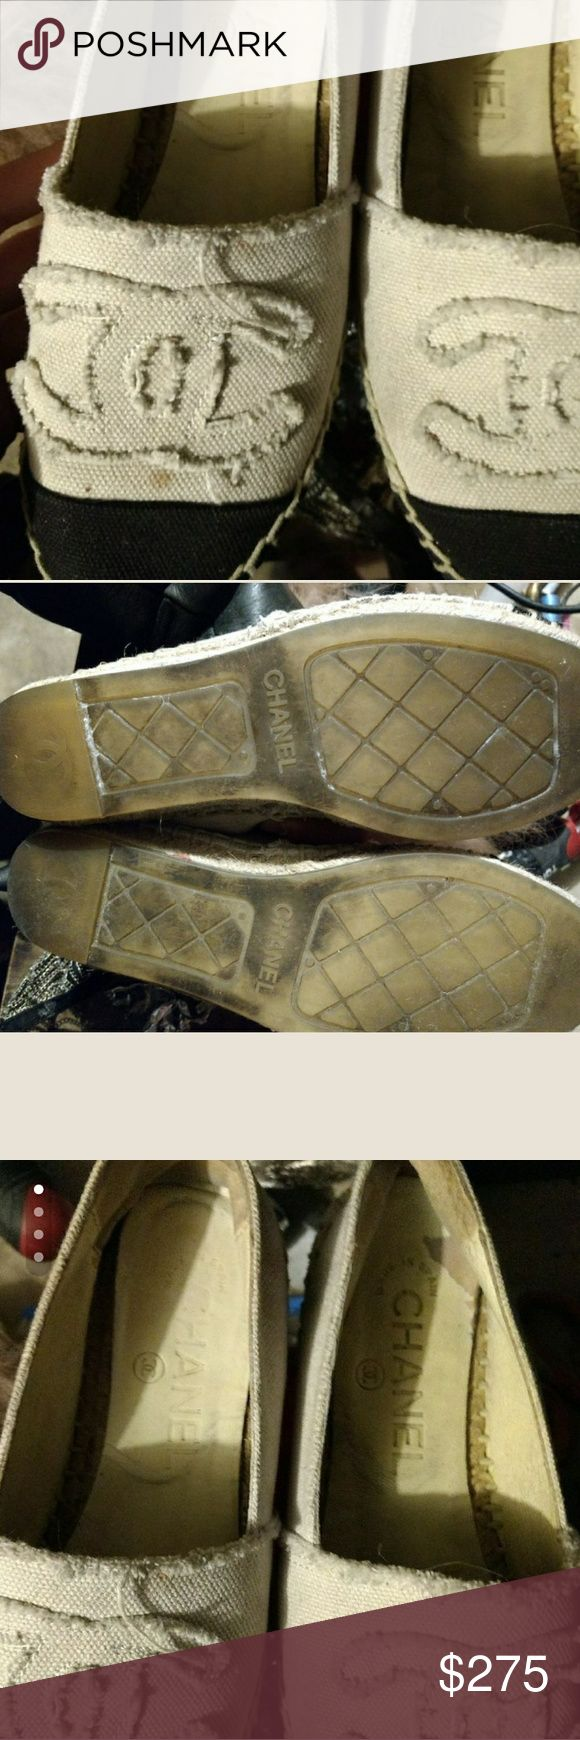 Chanel espadrilles Pre-owned but in great shape with no rips only some wear on the leather insole. B grade condition and flexible on price CHANEL Shoes Espadrilles